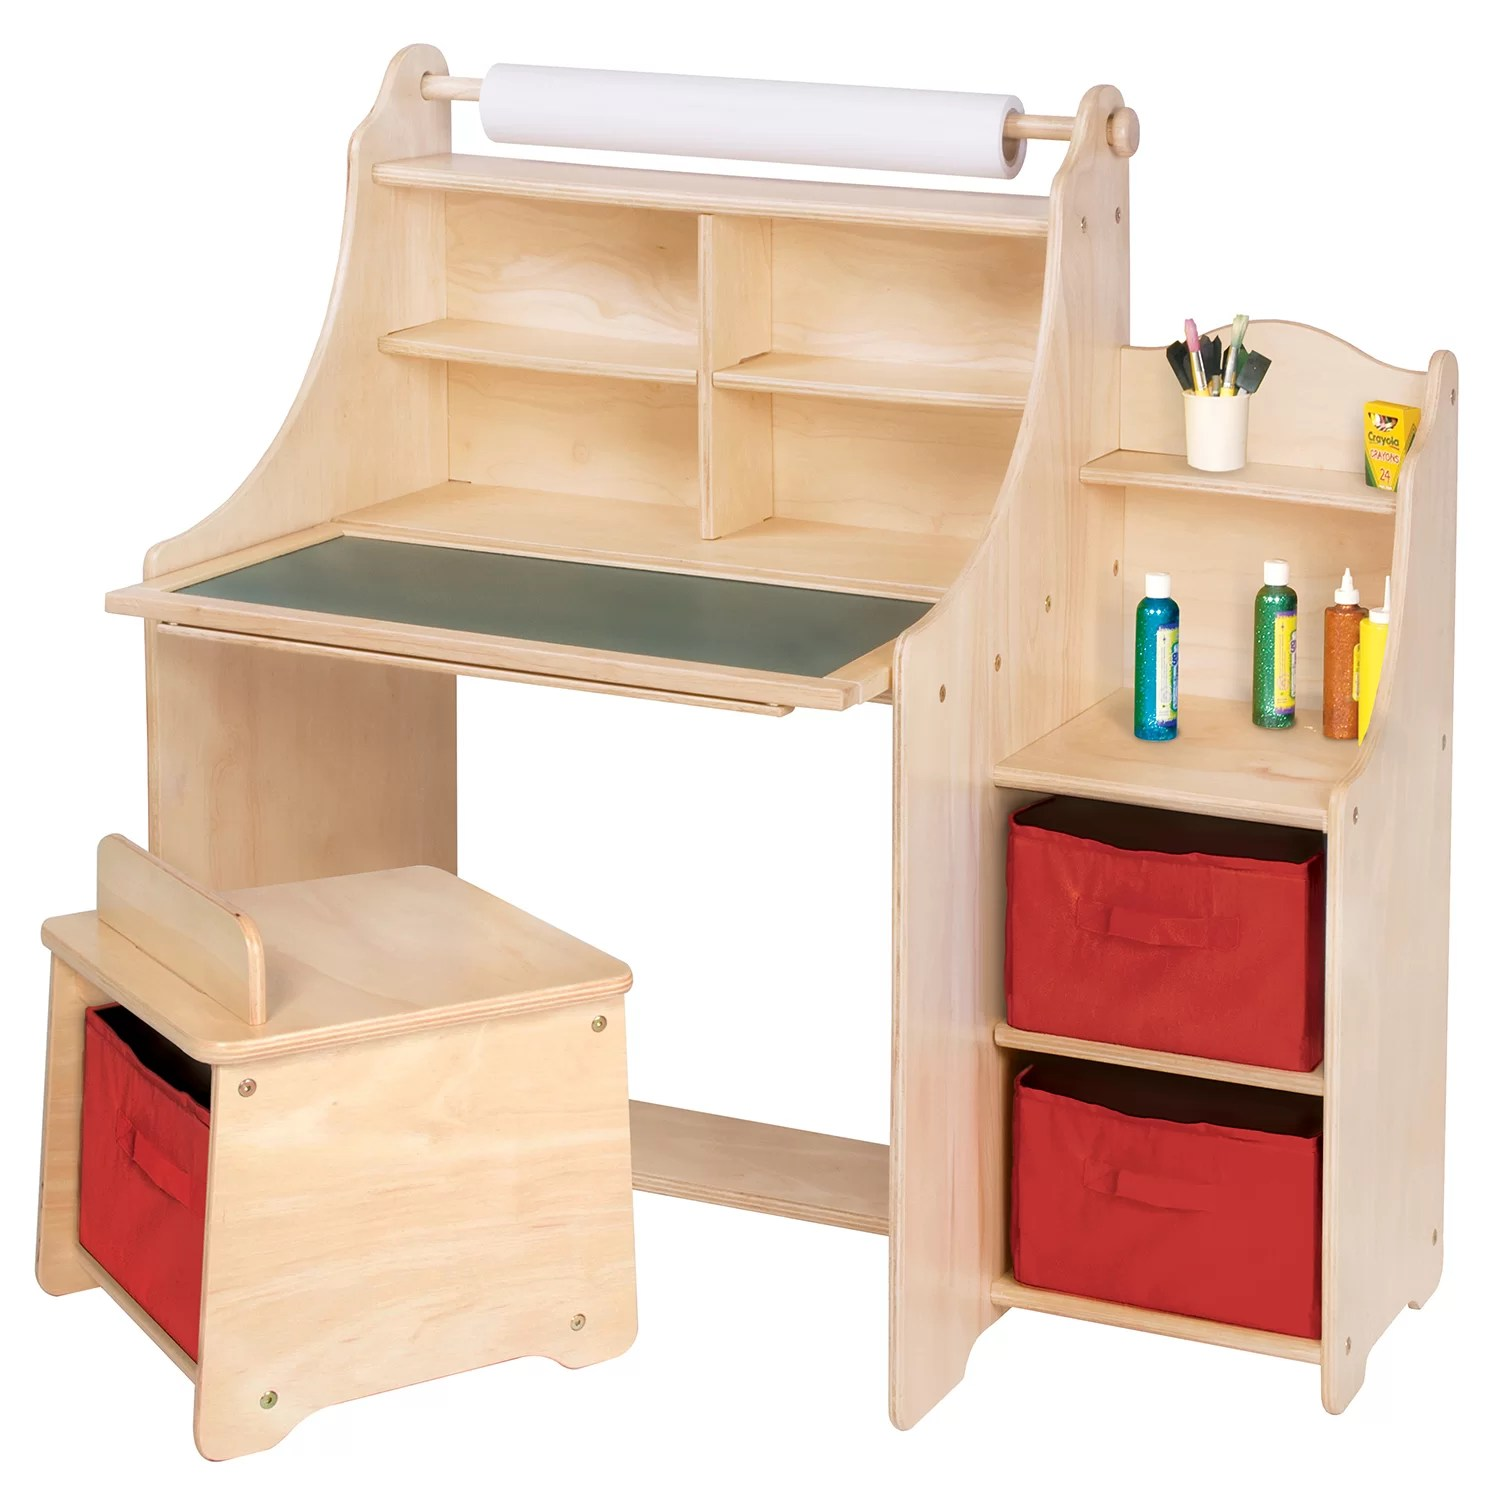 Toddler Art Desk With Storage  WebNuggetzcom